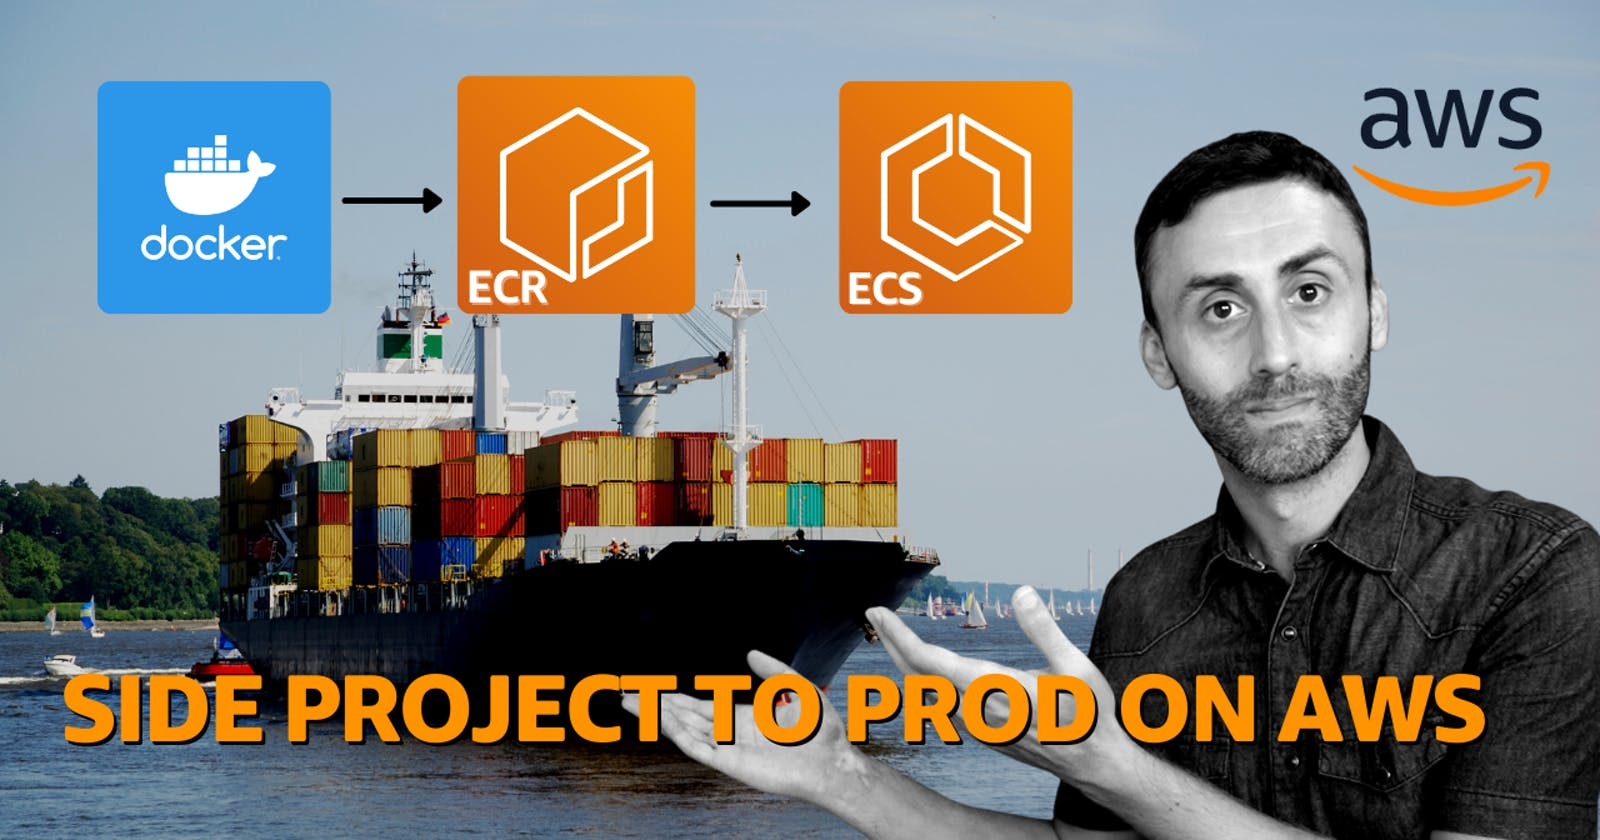 Take your side project to prod on AWS using ECR and ECS